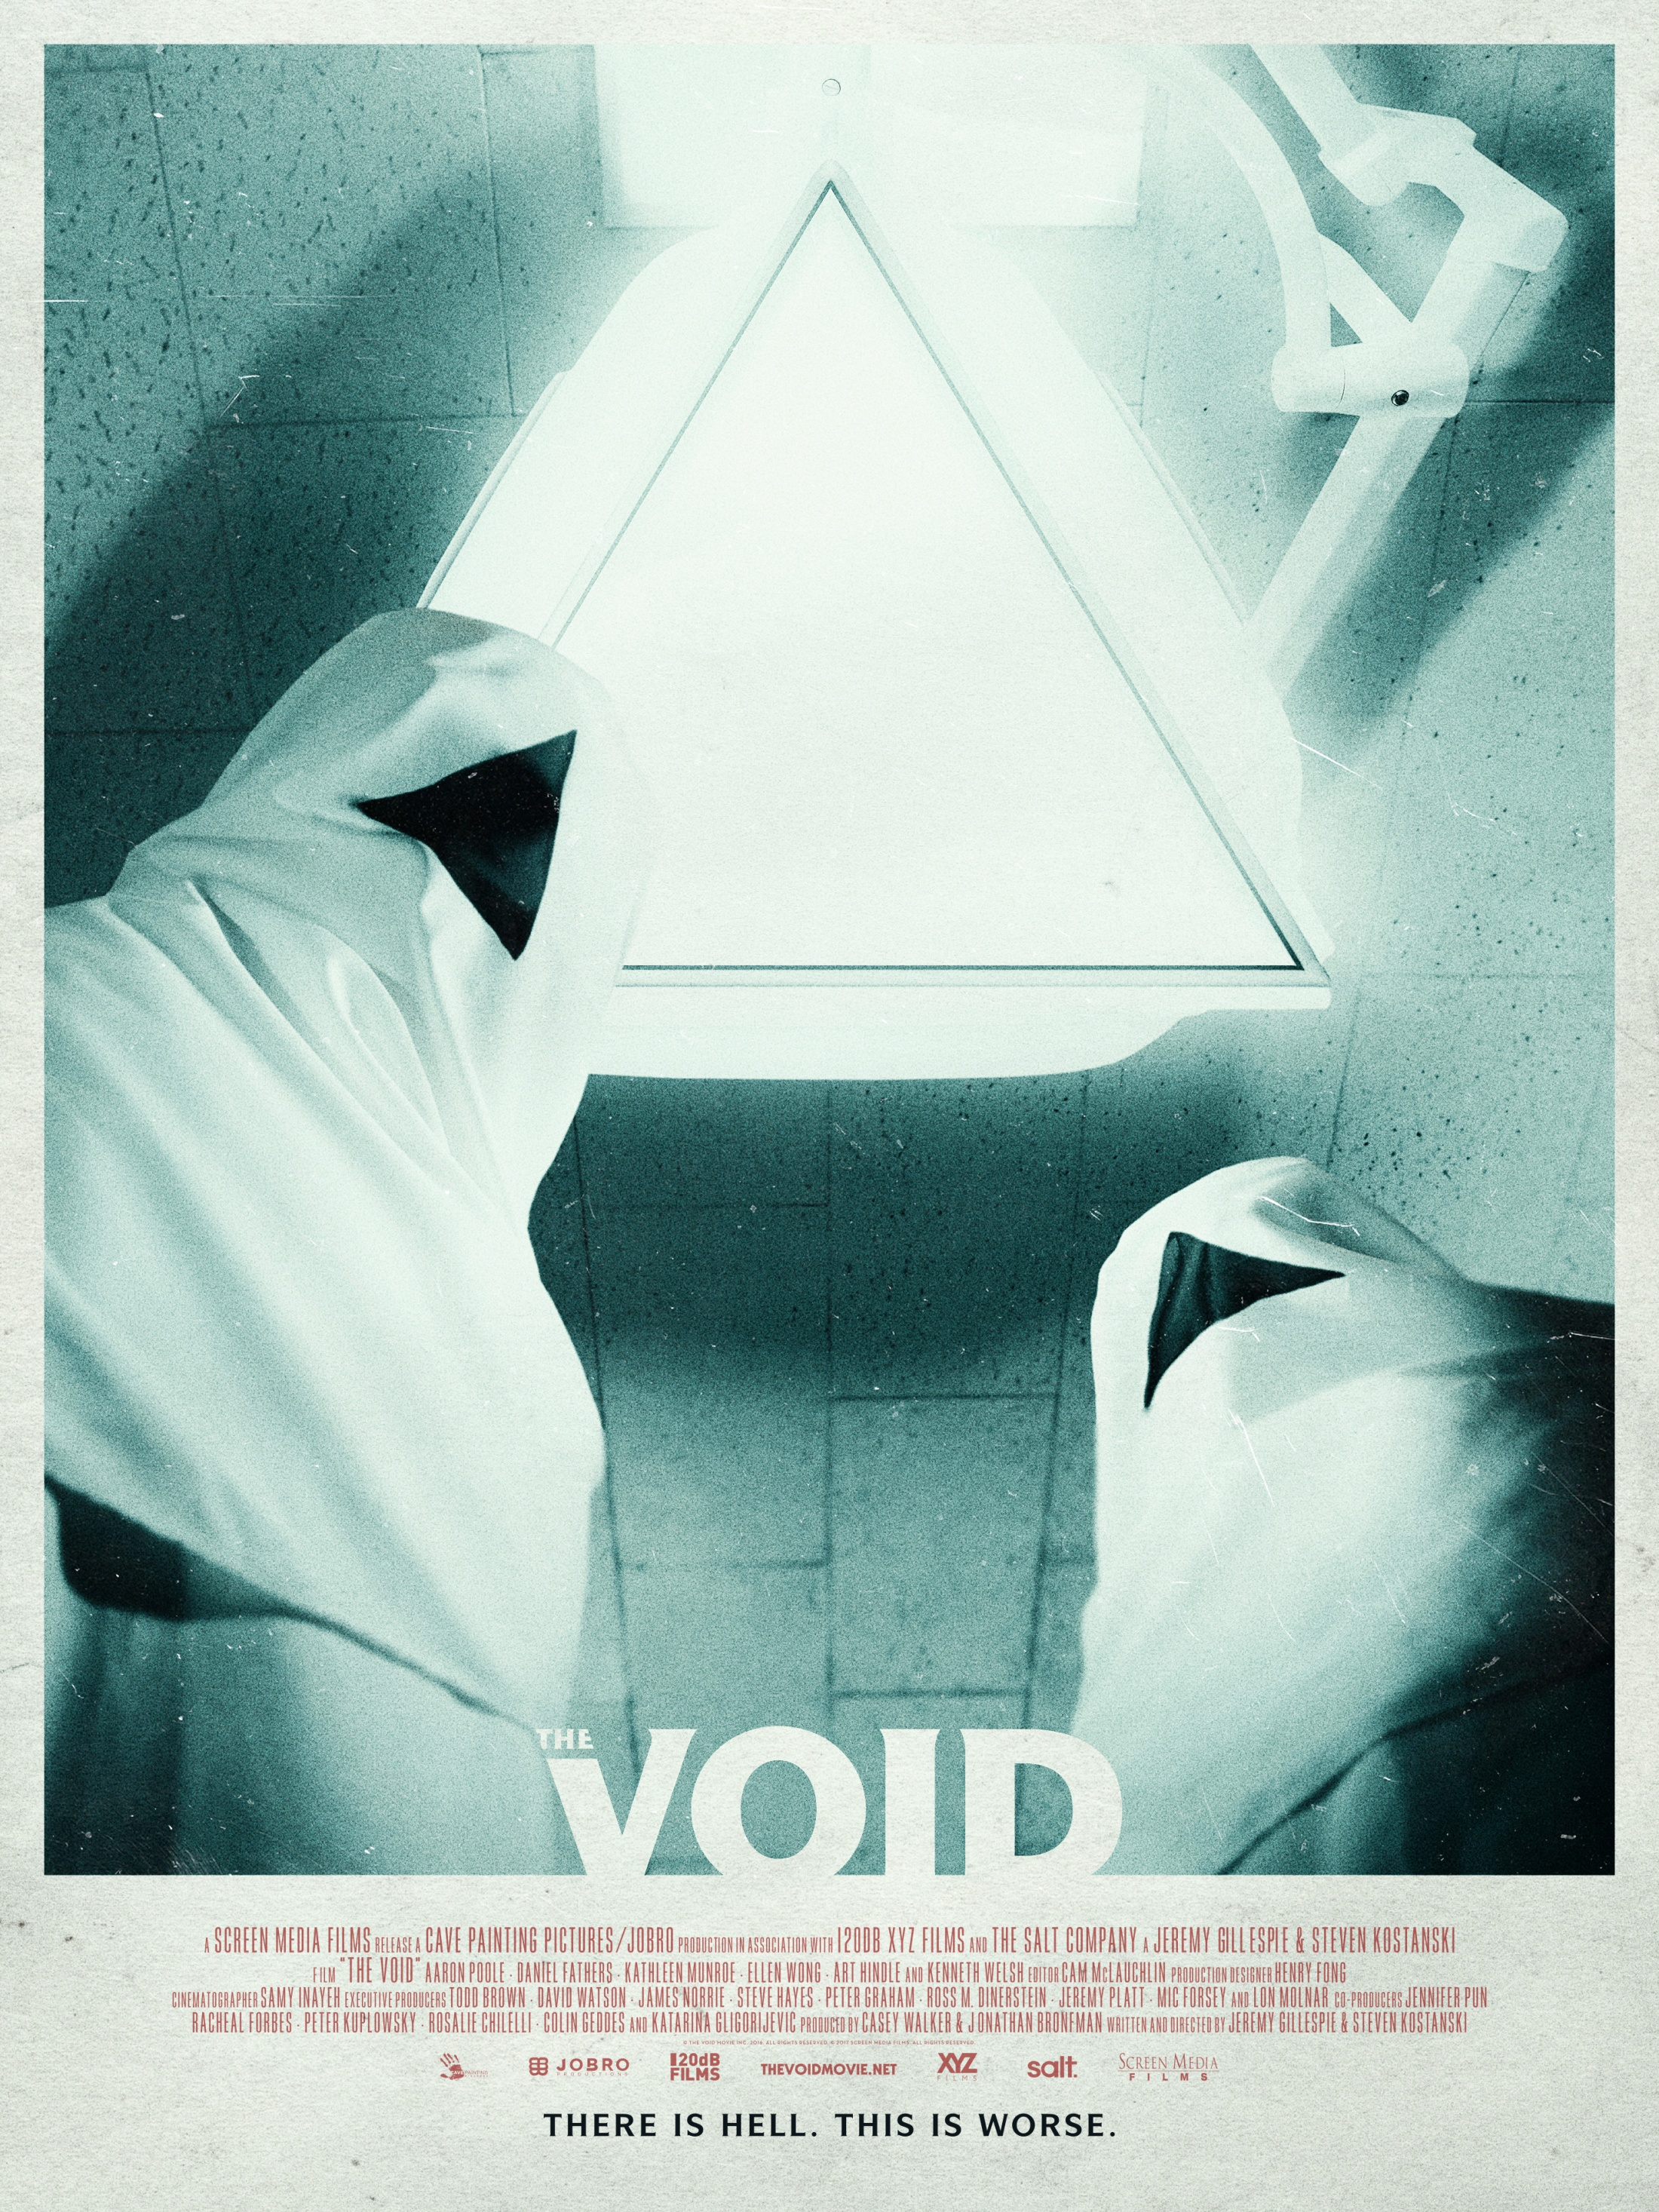 Image Media for COPY OF: COPY OF: The Void - Campaign